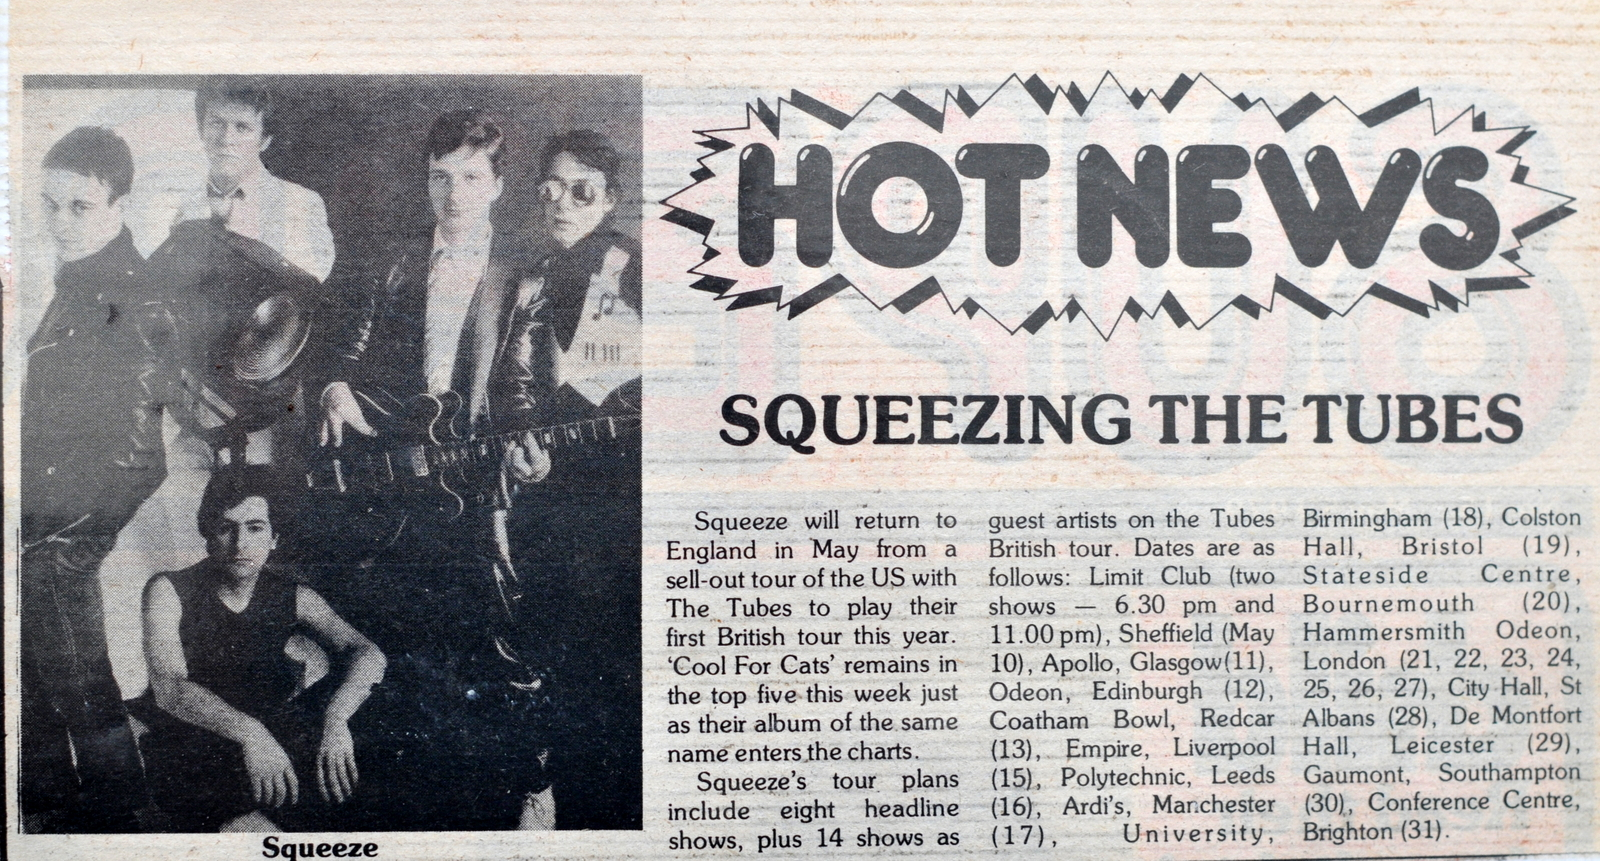 1979 tour with The Tubes